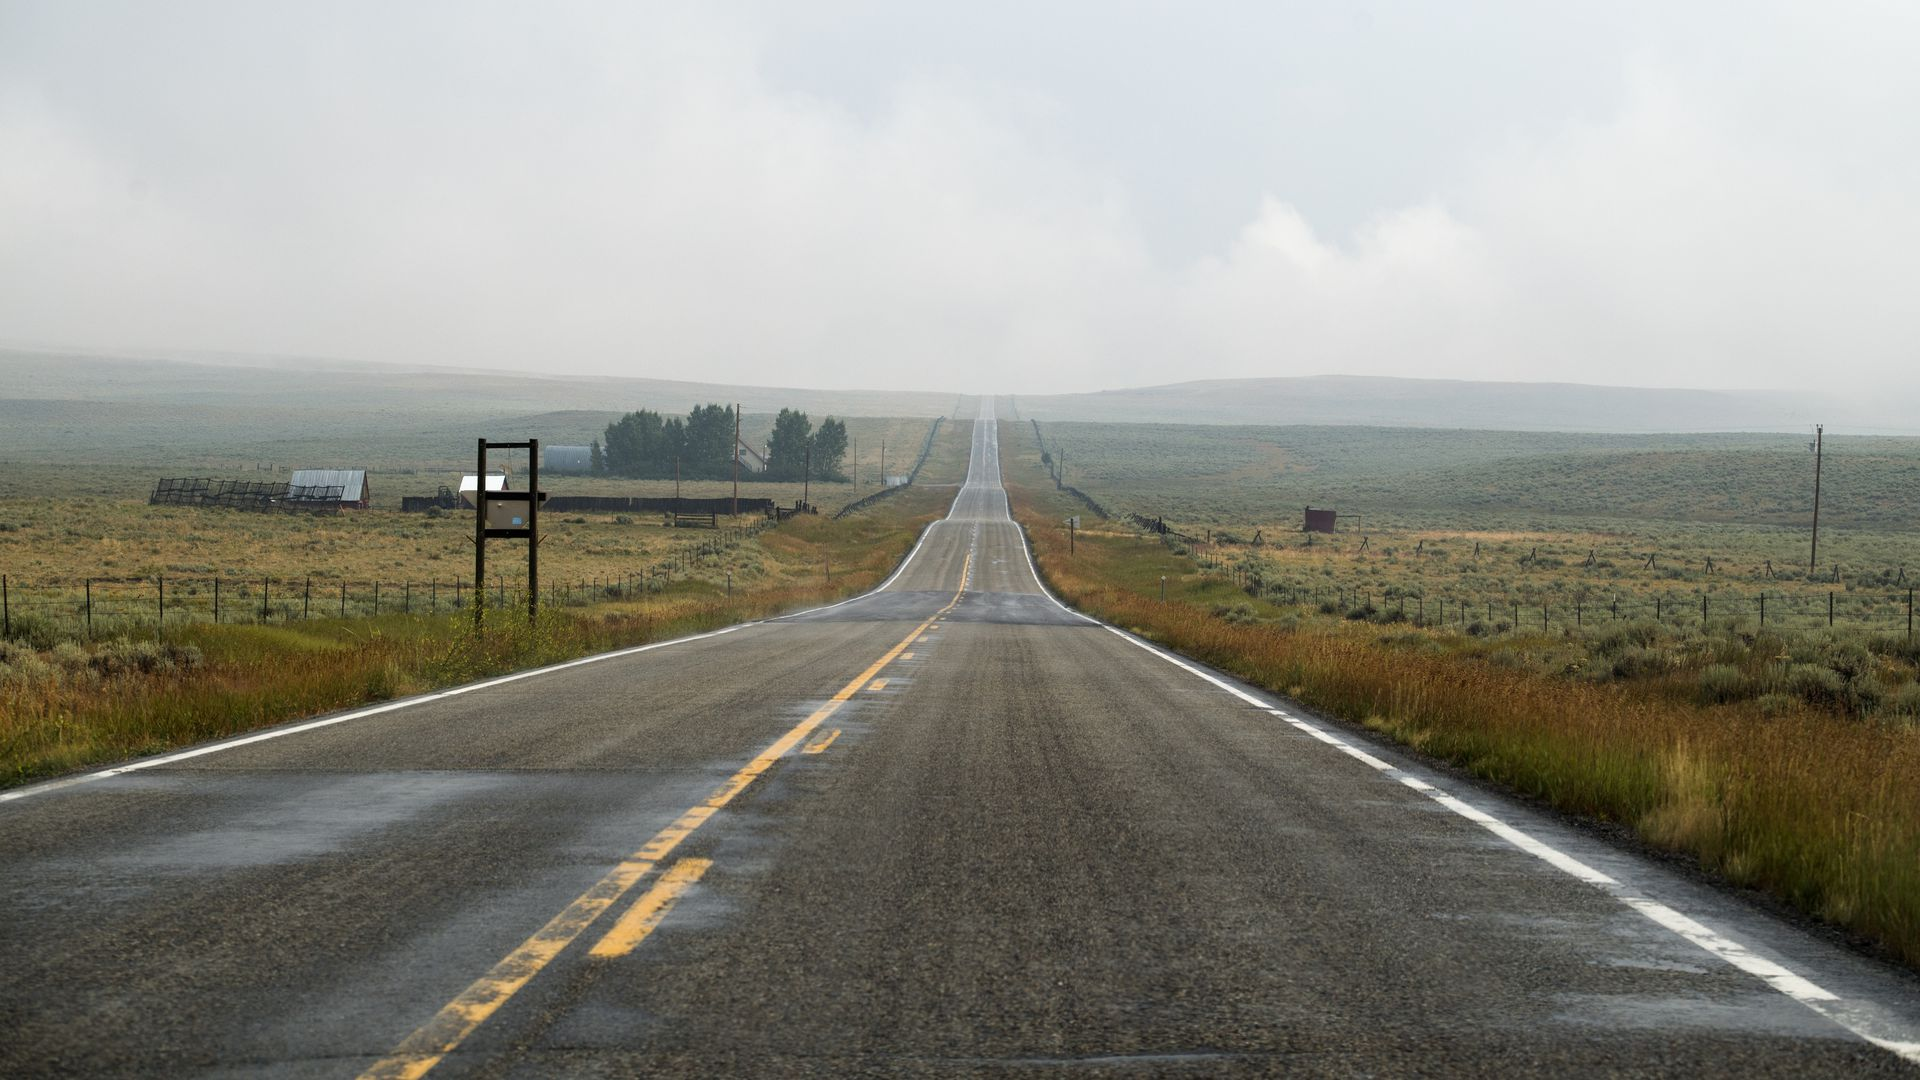 Stretch of highway in Montana